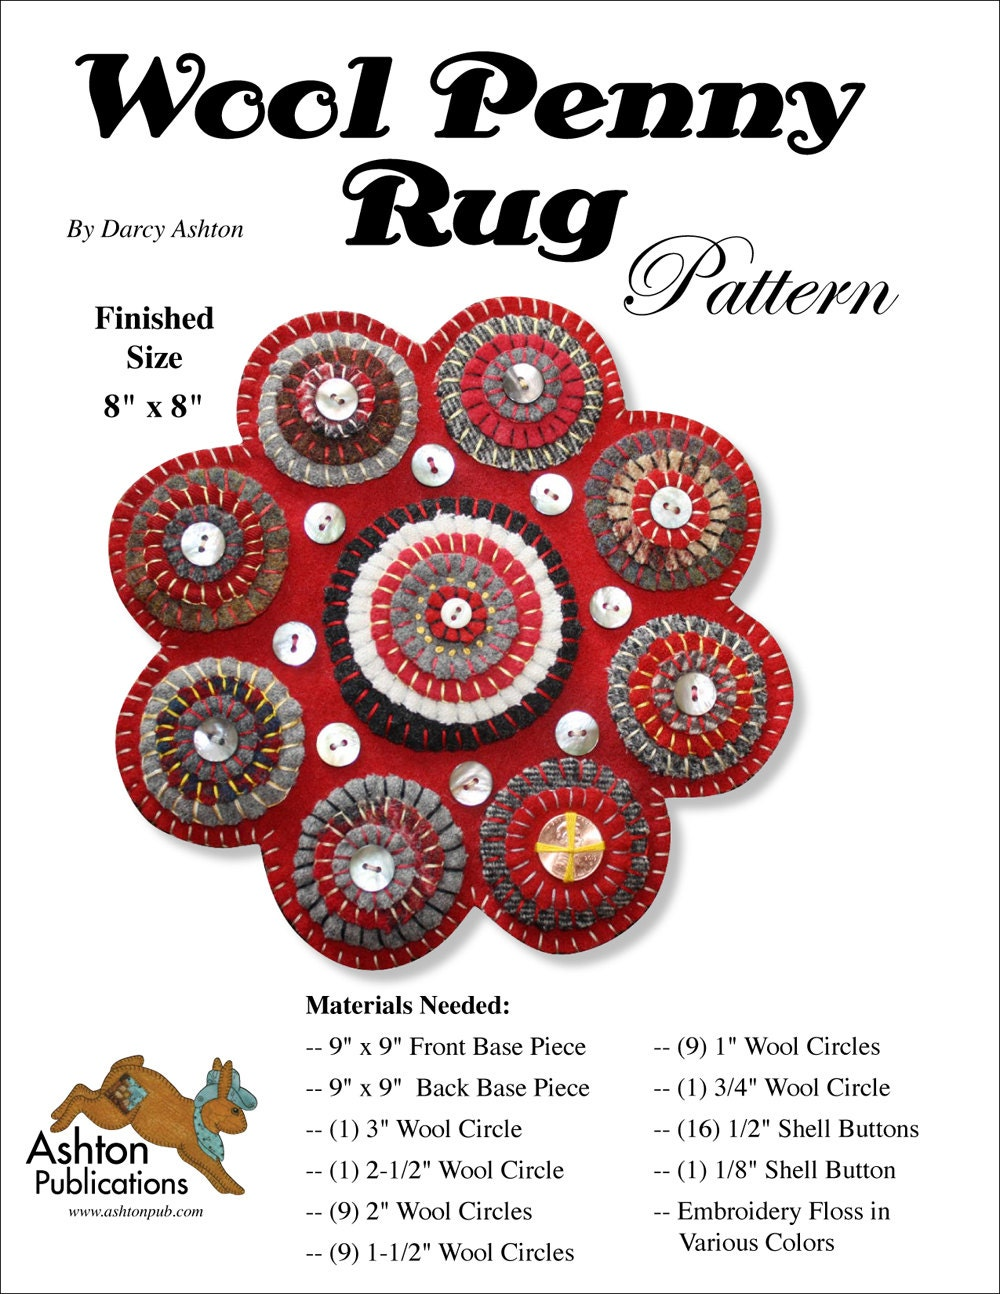 wool penny rug instructions